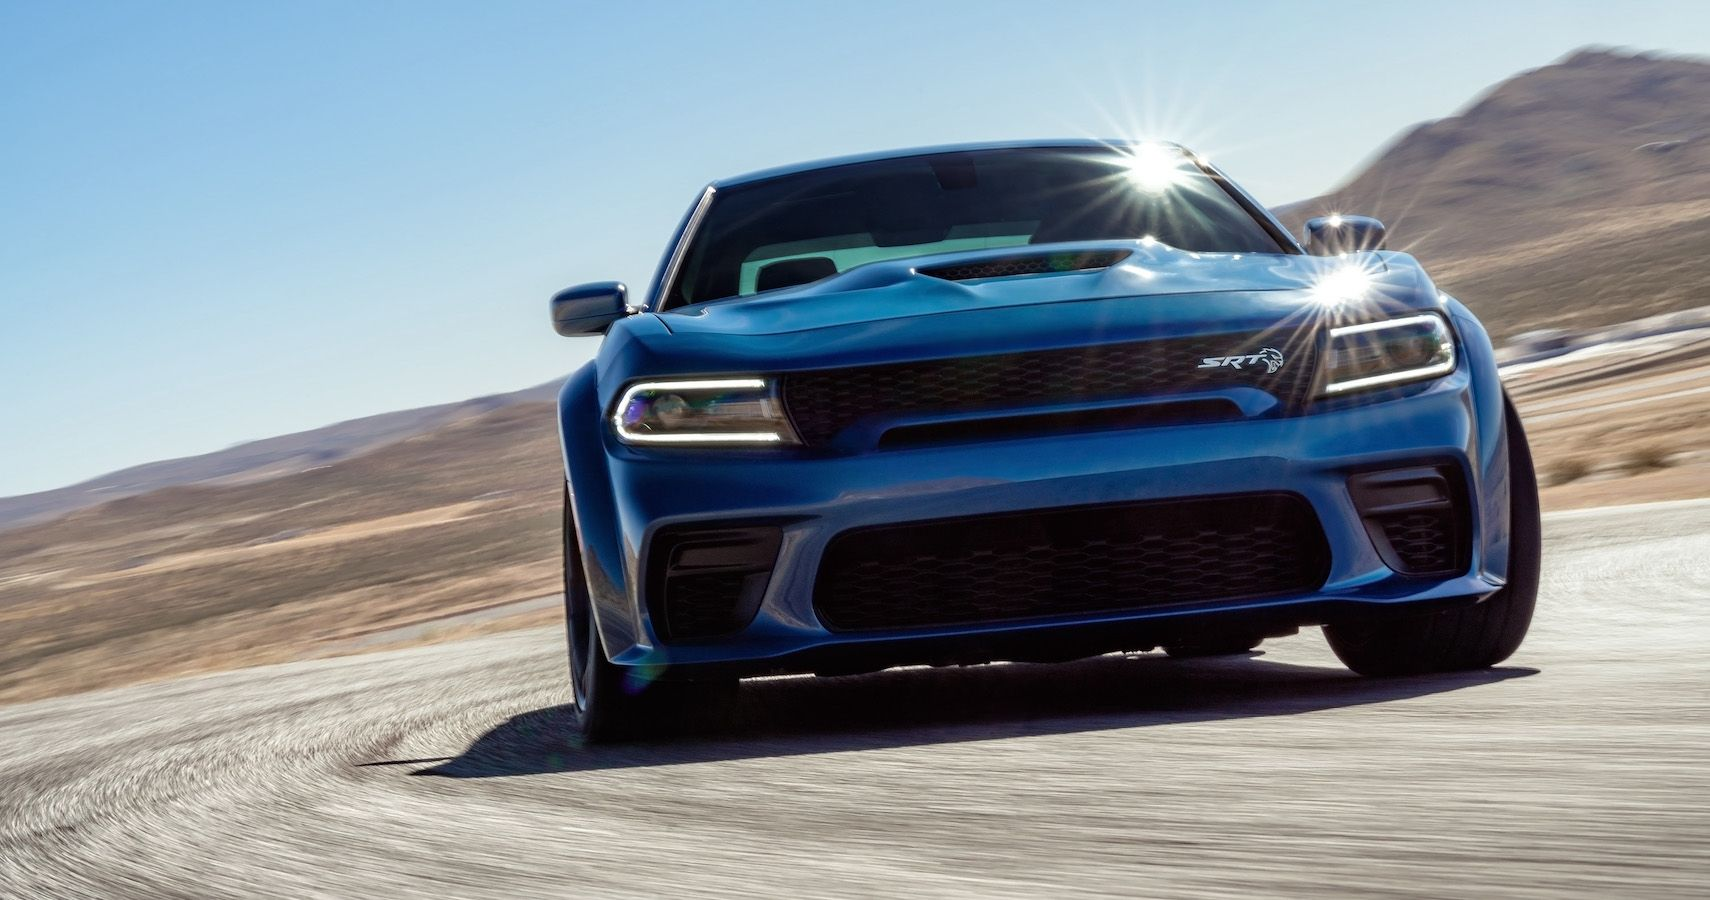 Hemi V8: Supercharge Or Twin Turbo? Here's Advice From A Mopar Enthusiast